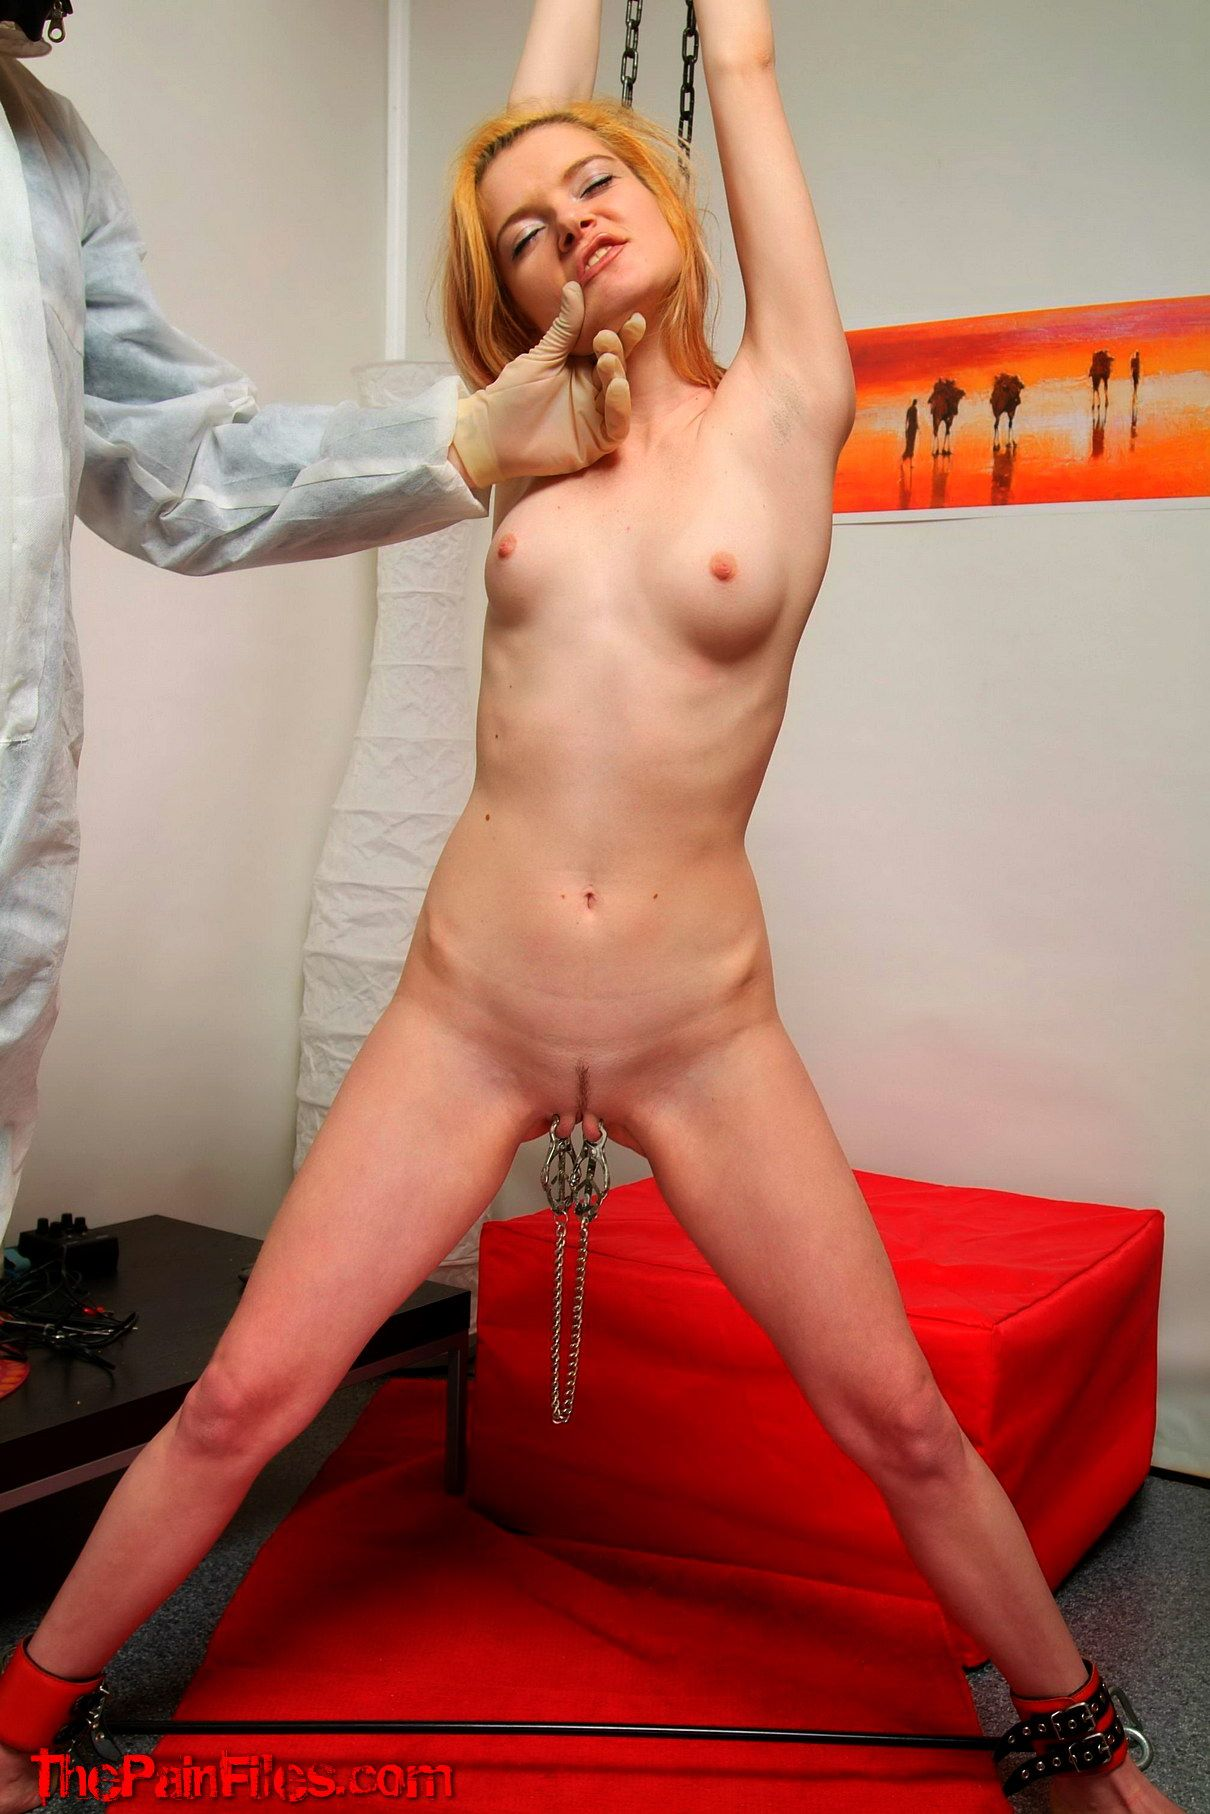 best of Galleries Bdsm tgp